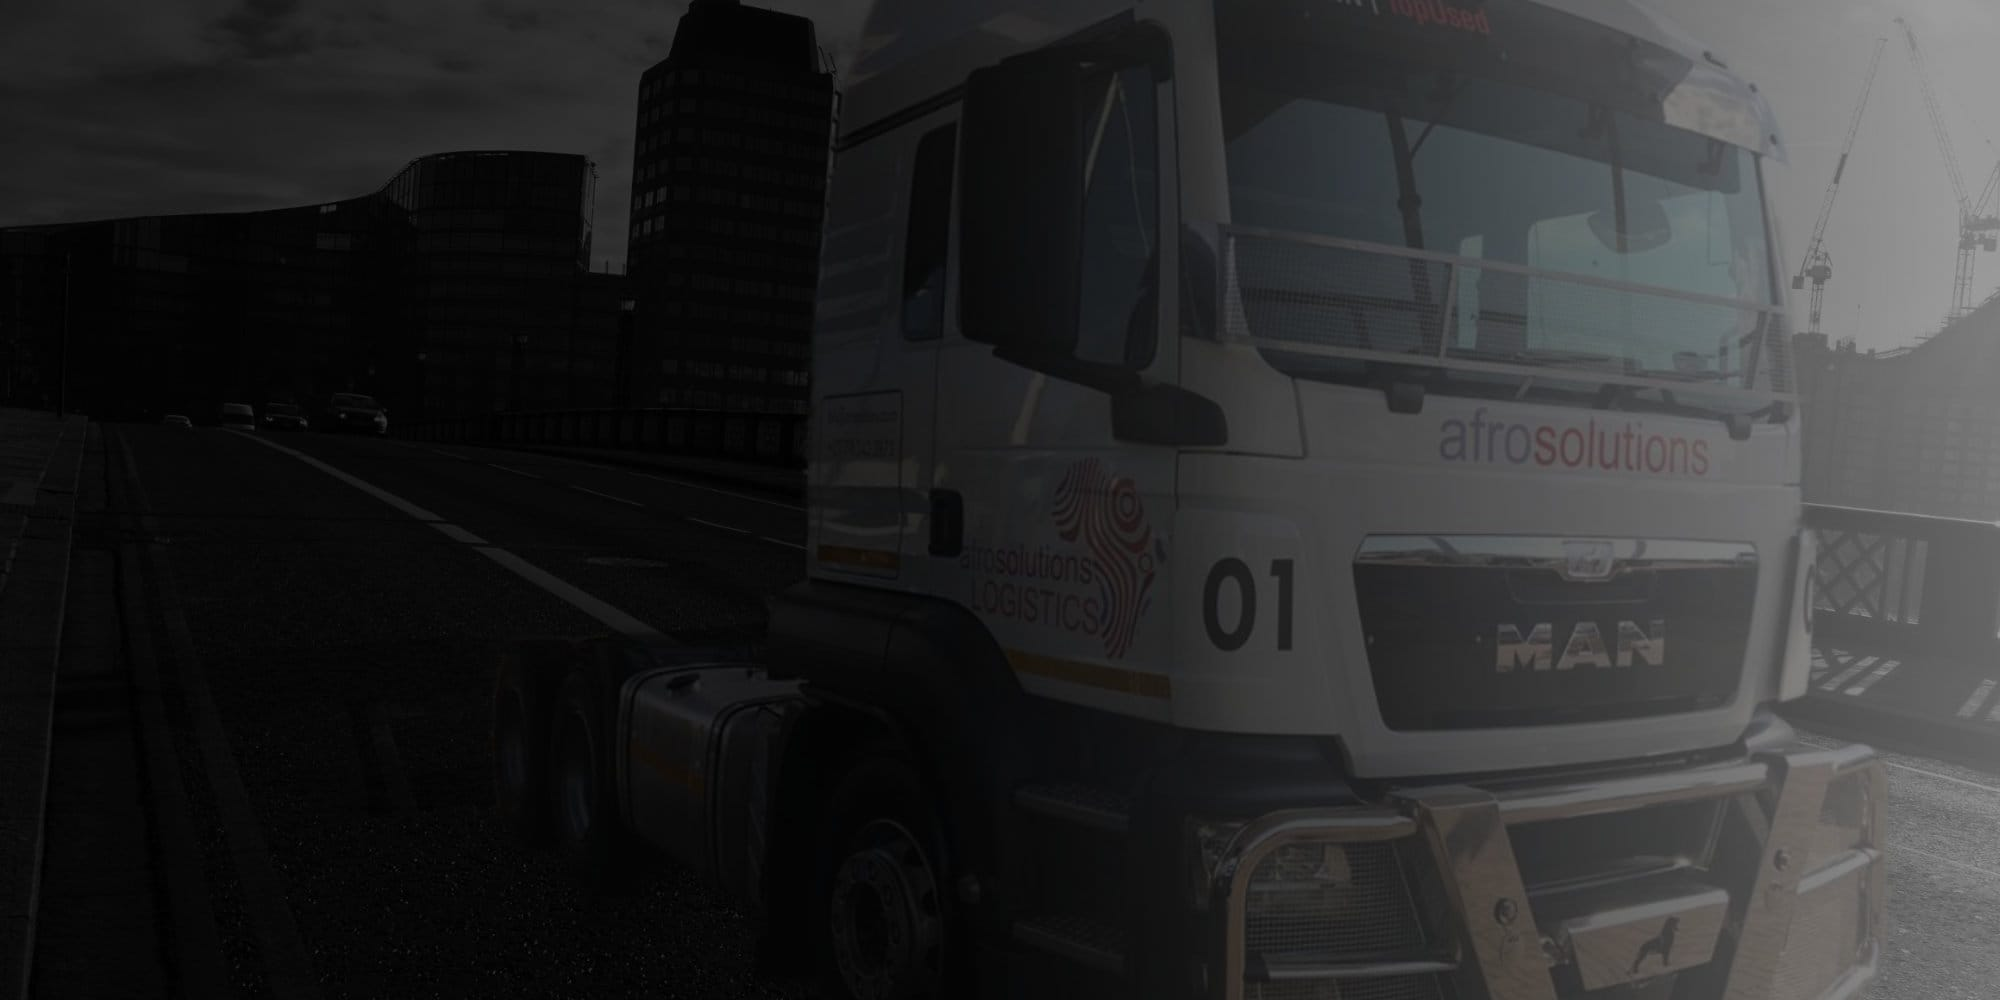 Afrosolutions Services Transport and Logistics